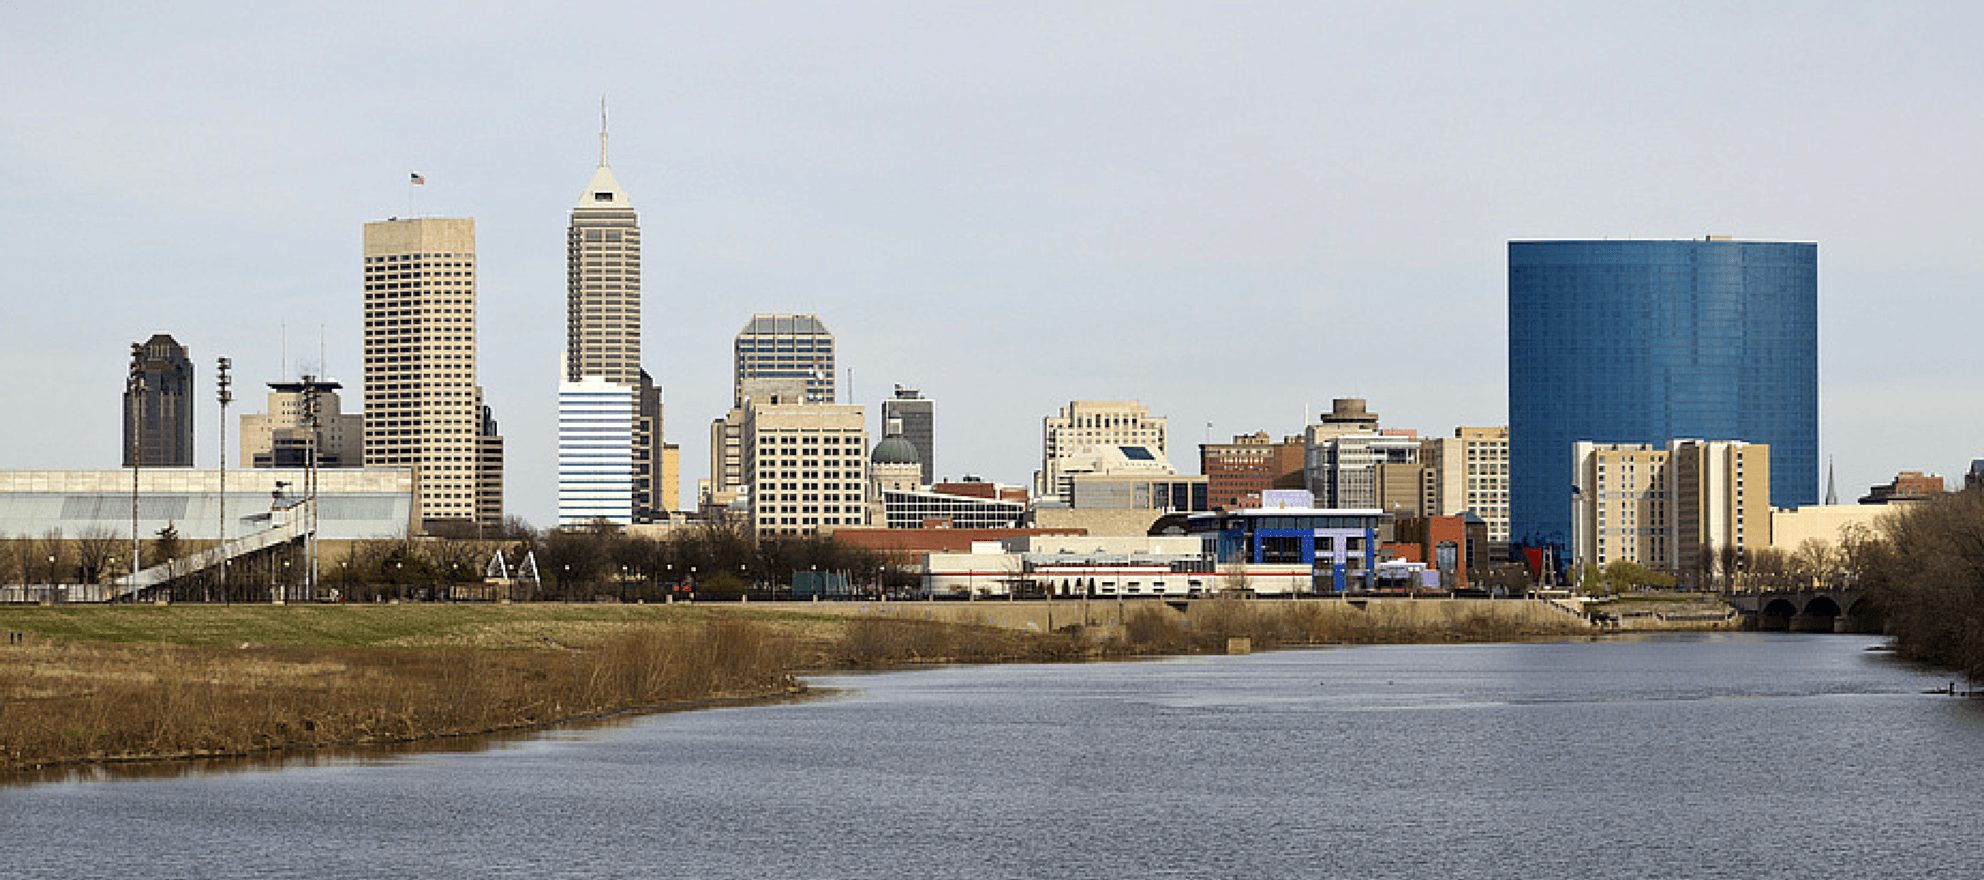 Redfin's 2014 expansion push rolls into Indianapolis